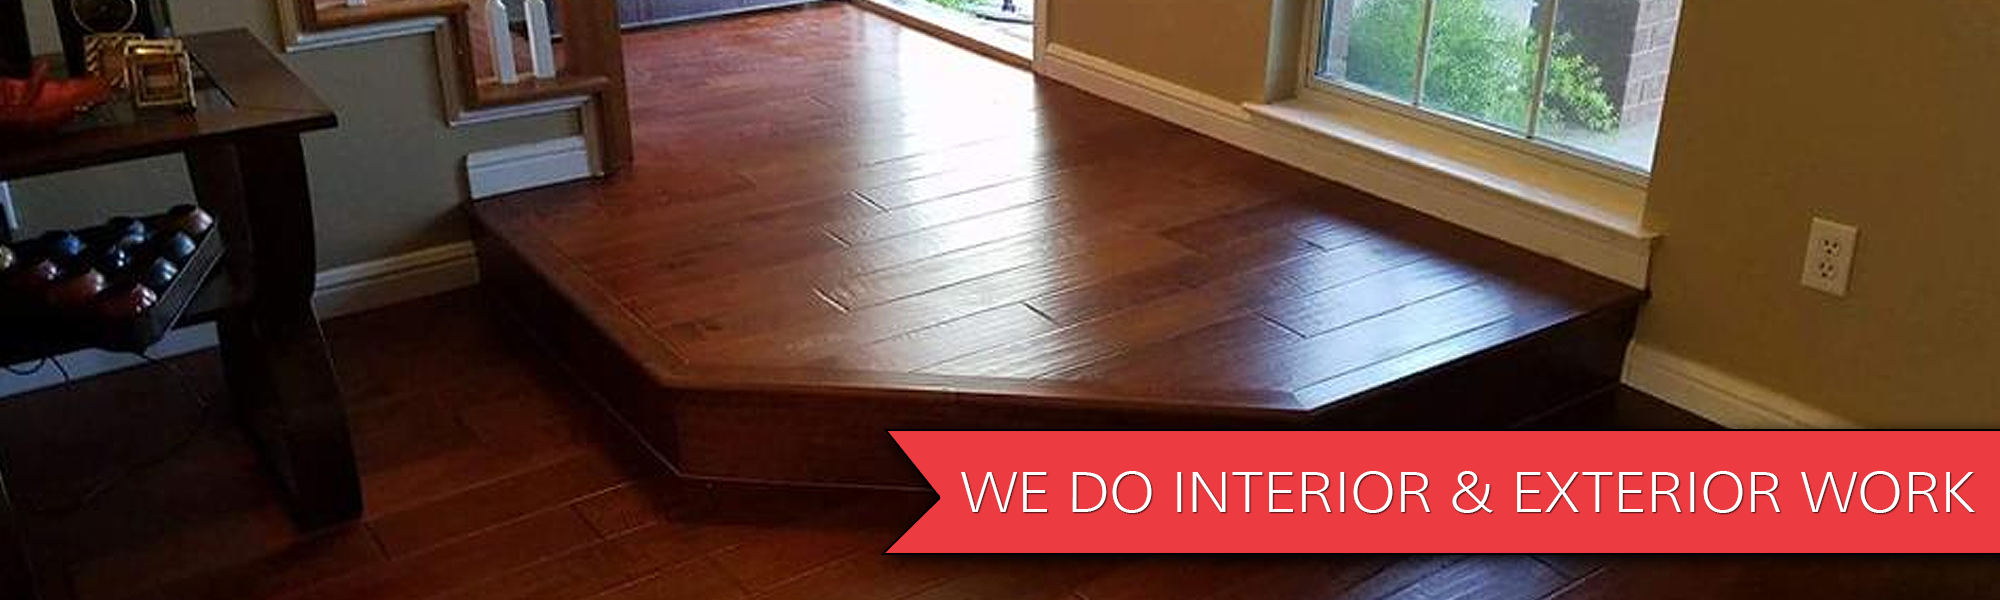 Floor | Flooring Services in Fort Worth, TX